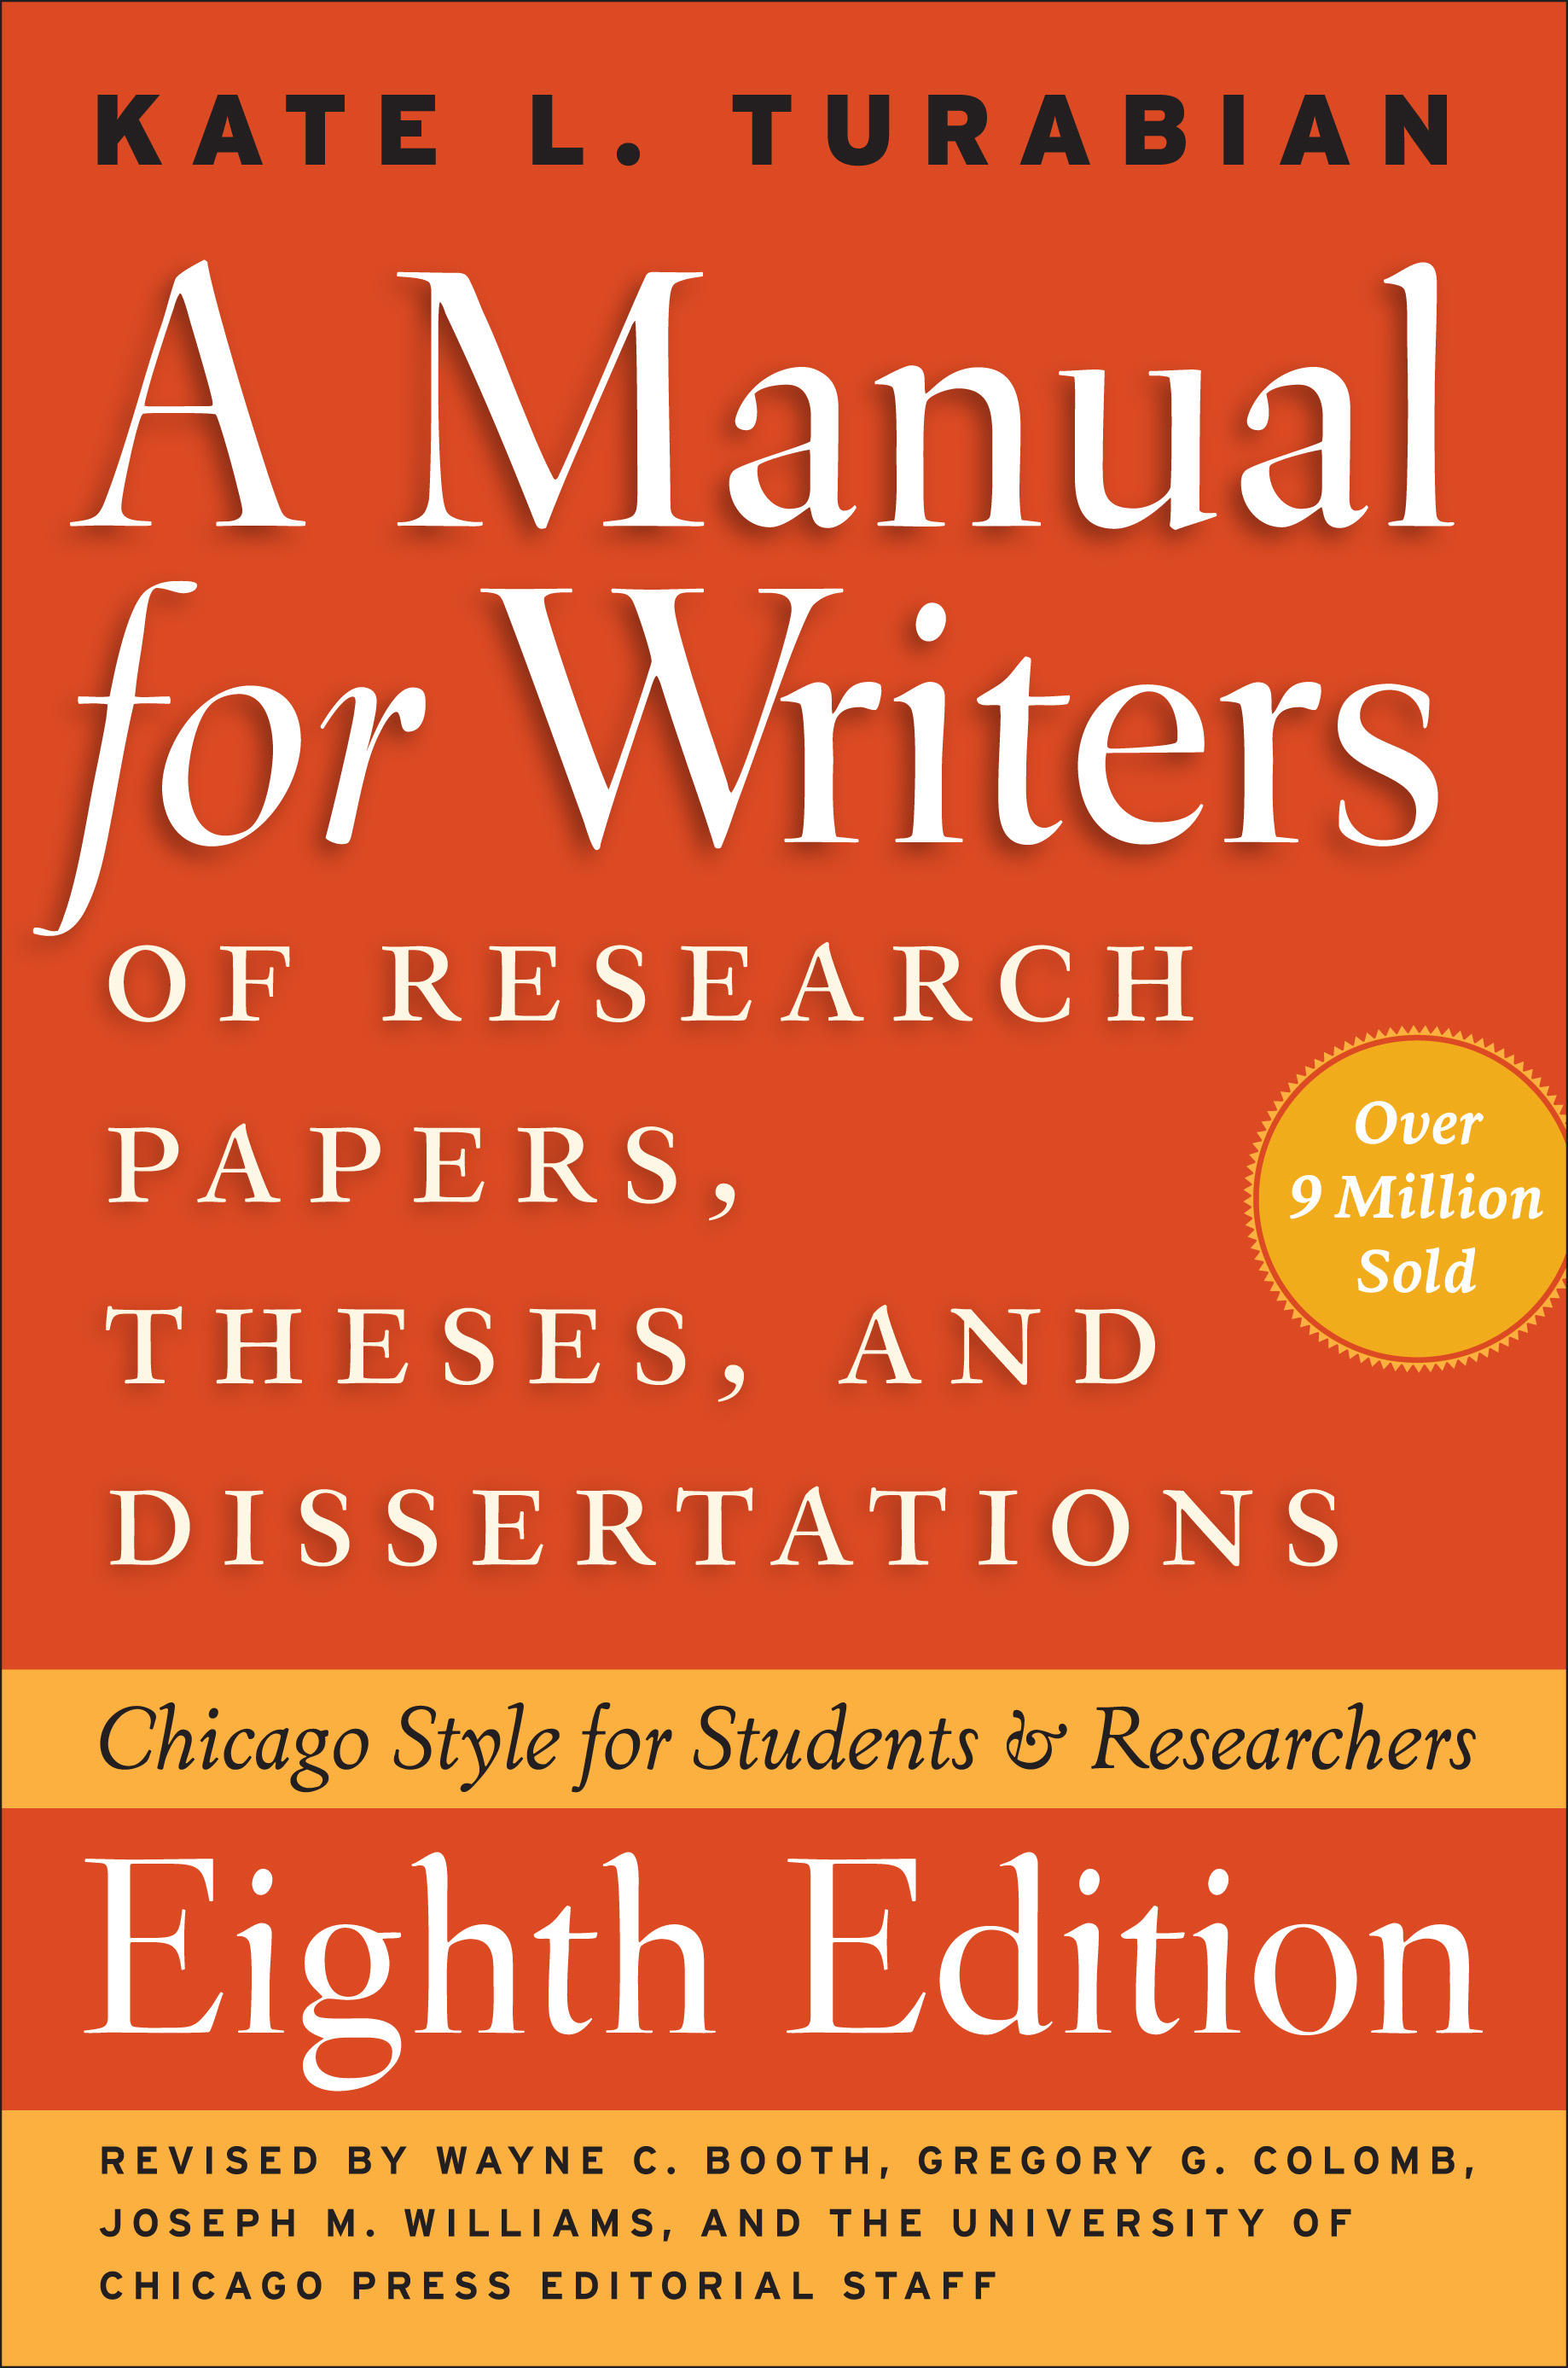 012 Turabian Guide Cover Manual For Writers Of Researchs Theses And Dissertations 9th Edition Pdf Wonderful A Research Papers Full